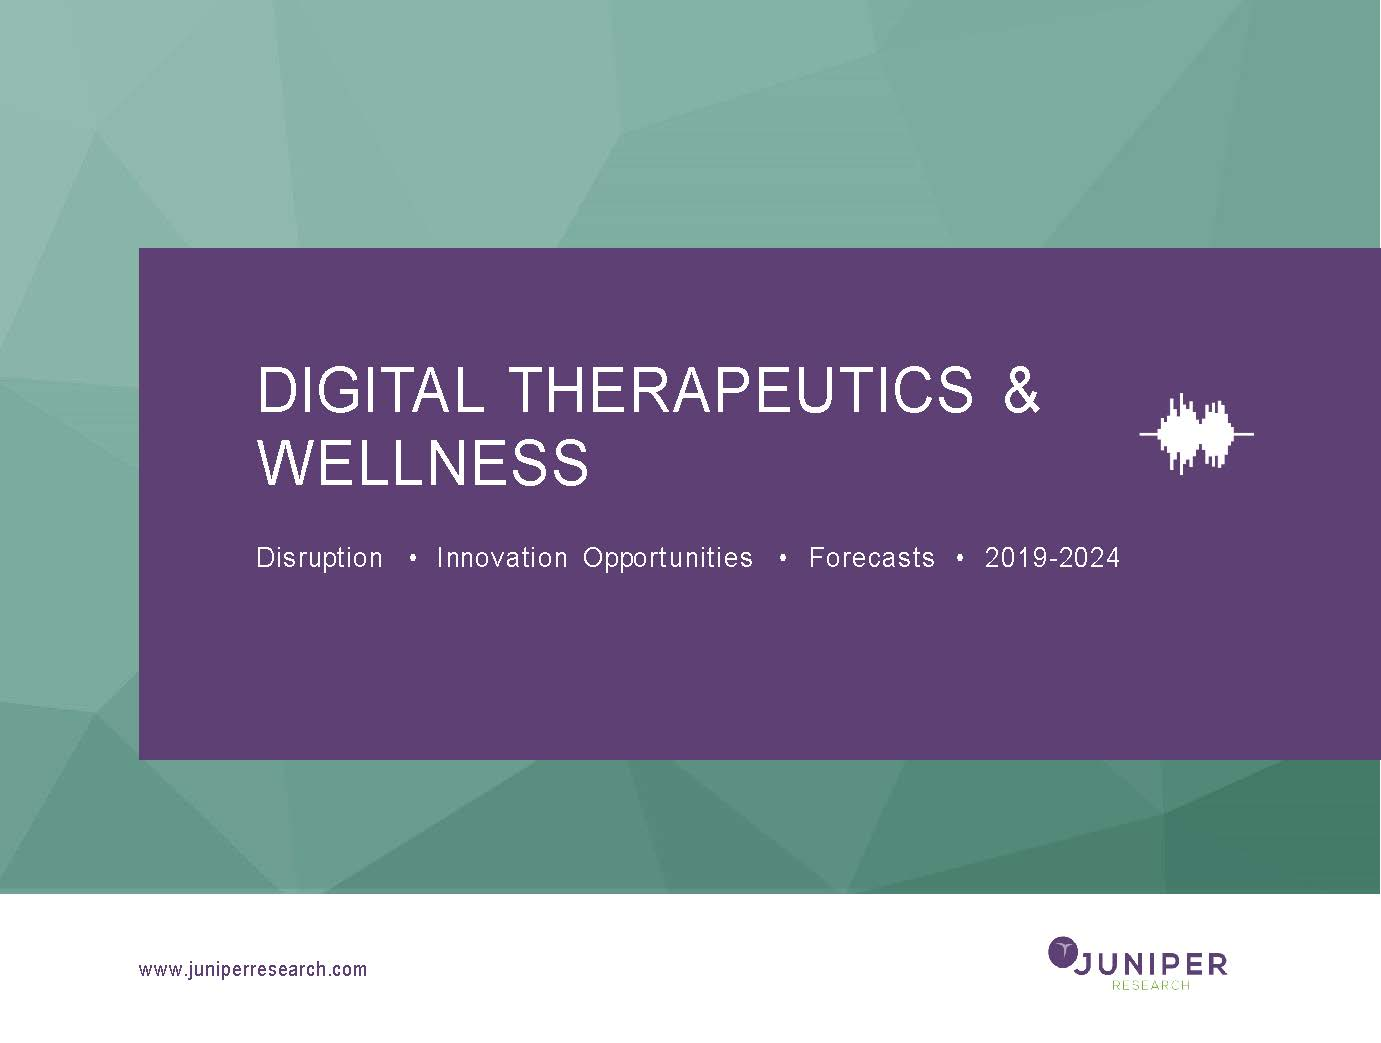 Digital Therapeutics & Wellness